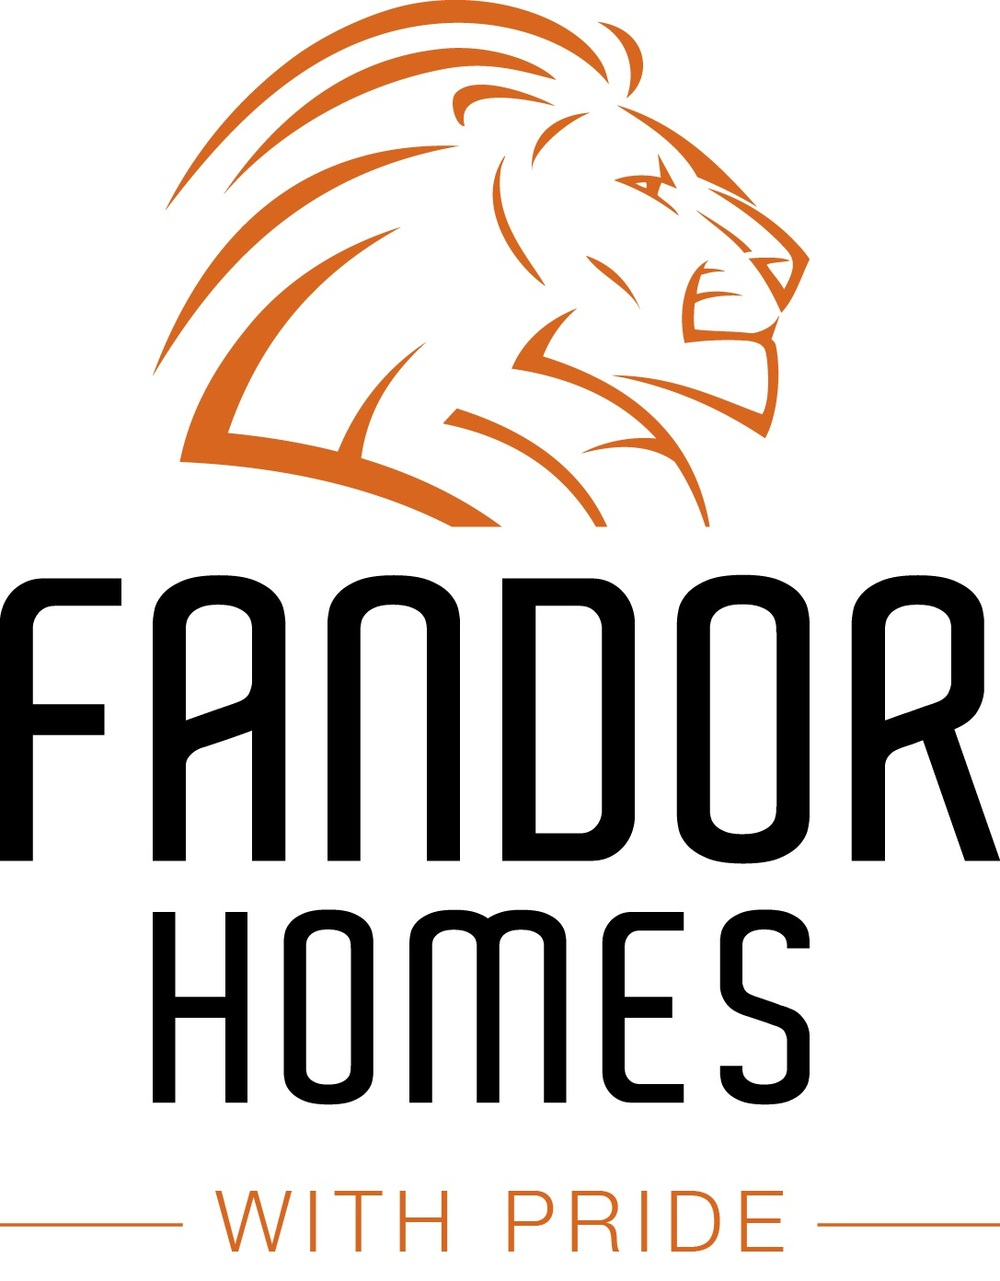 Fandor Homes_logo_jpg.jpg